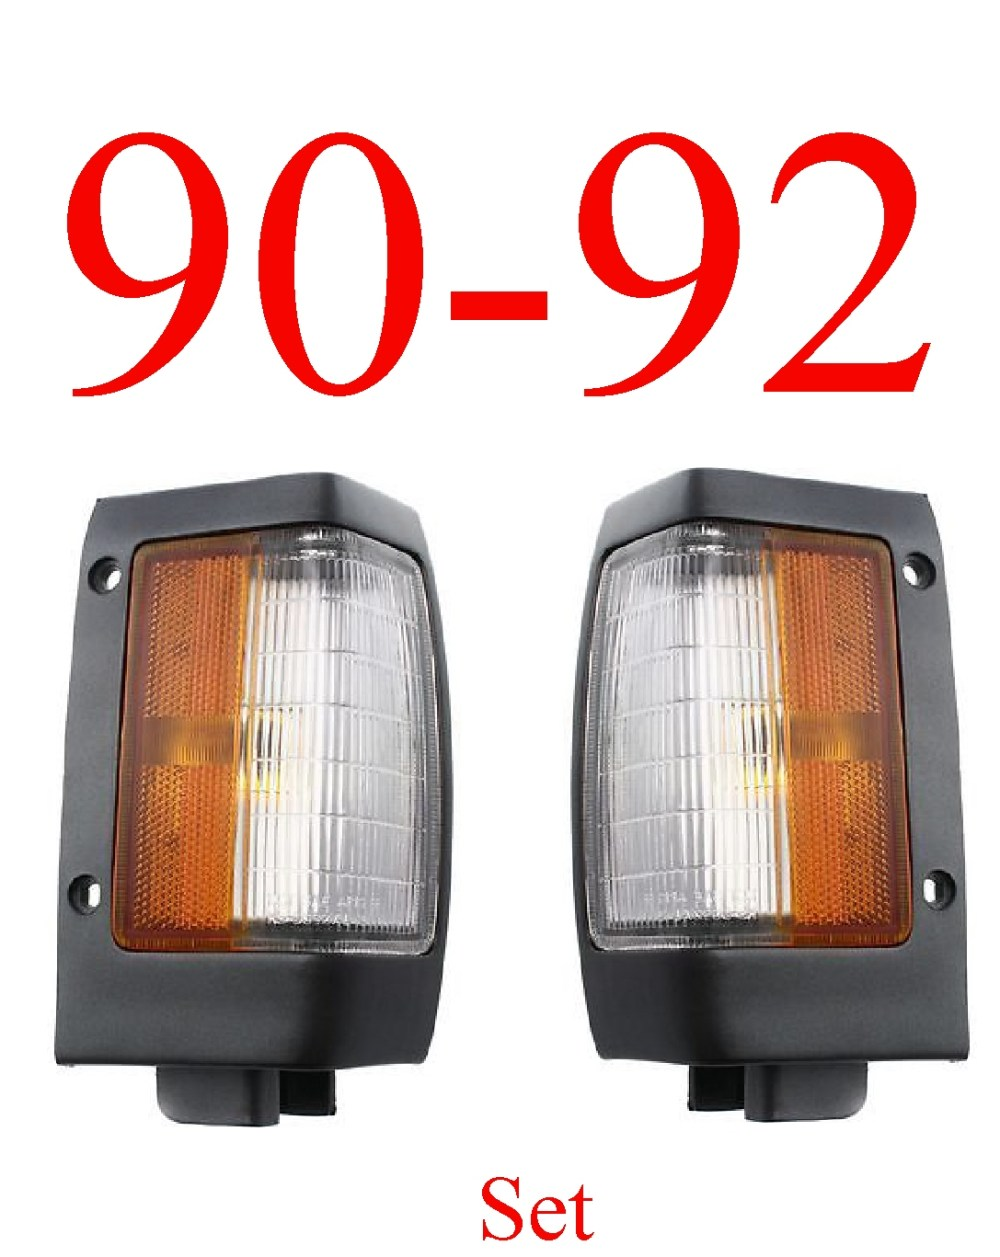 medium resolution of 90 92 nissan hardbody black parking light set